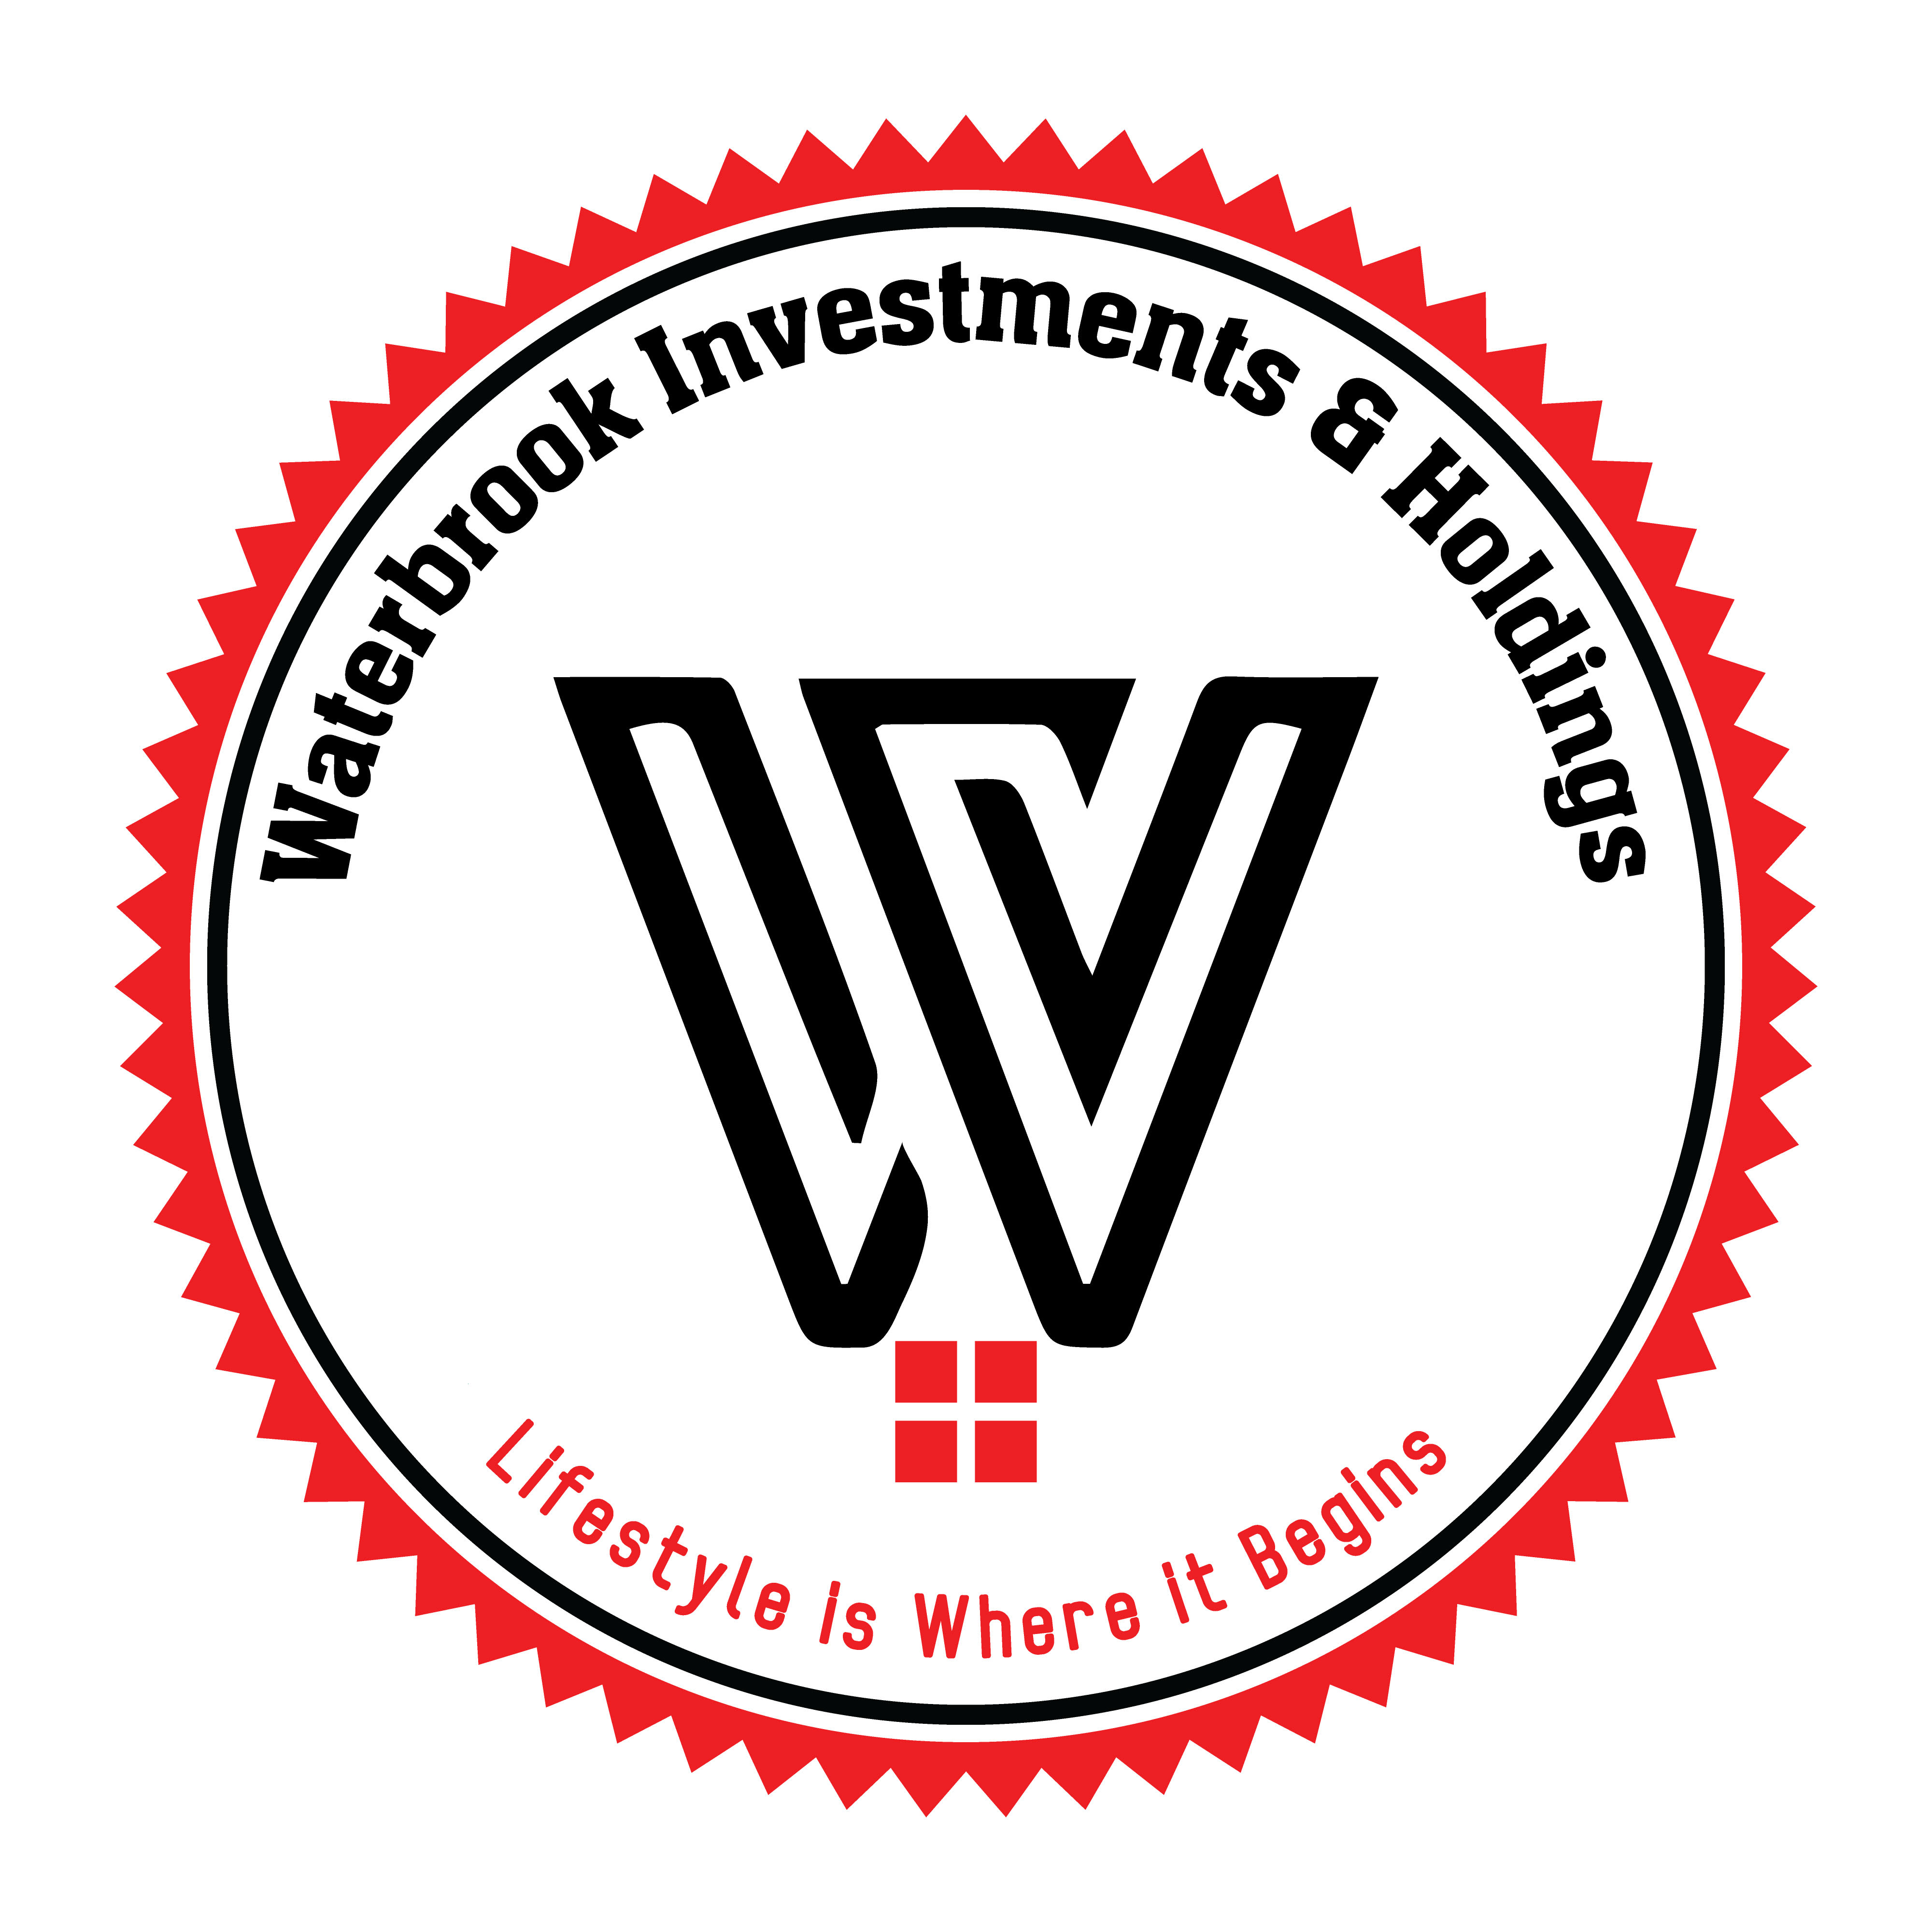 Waterbrook Investments & Holdings